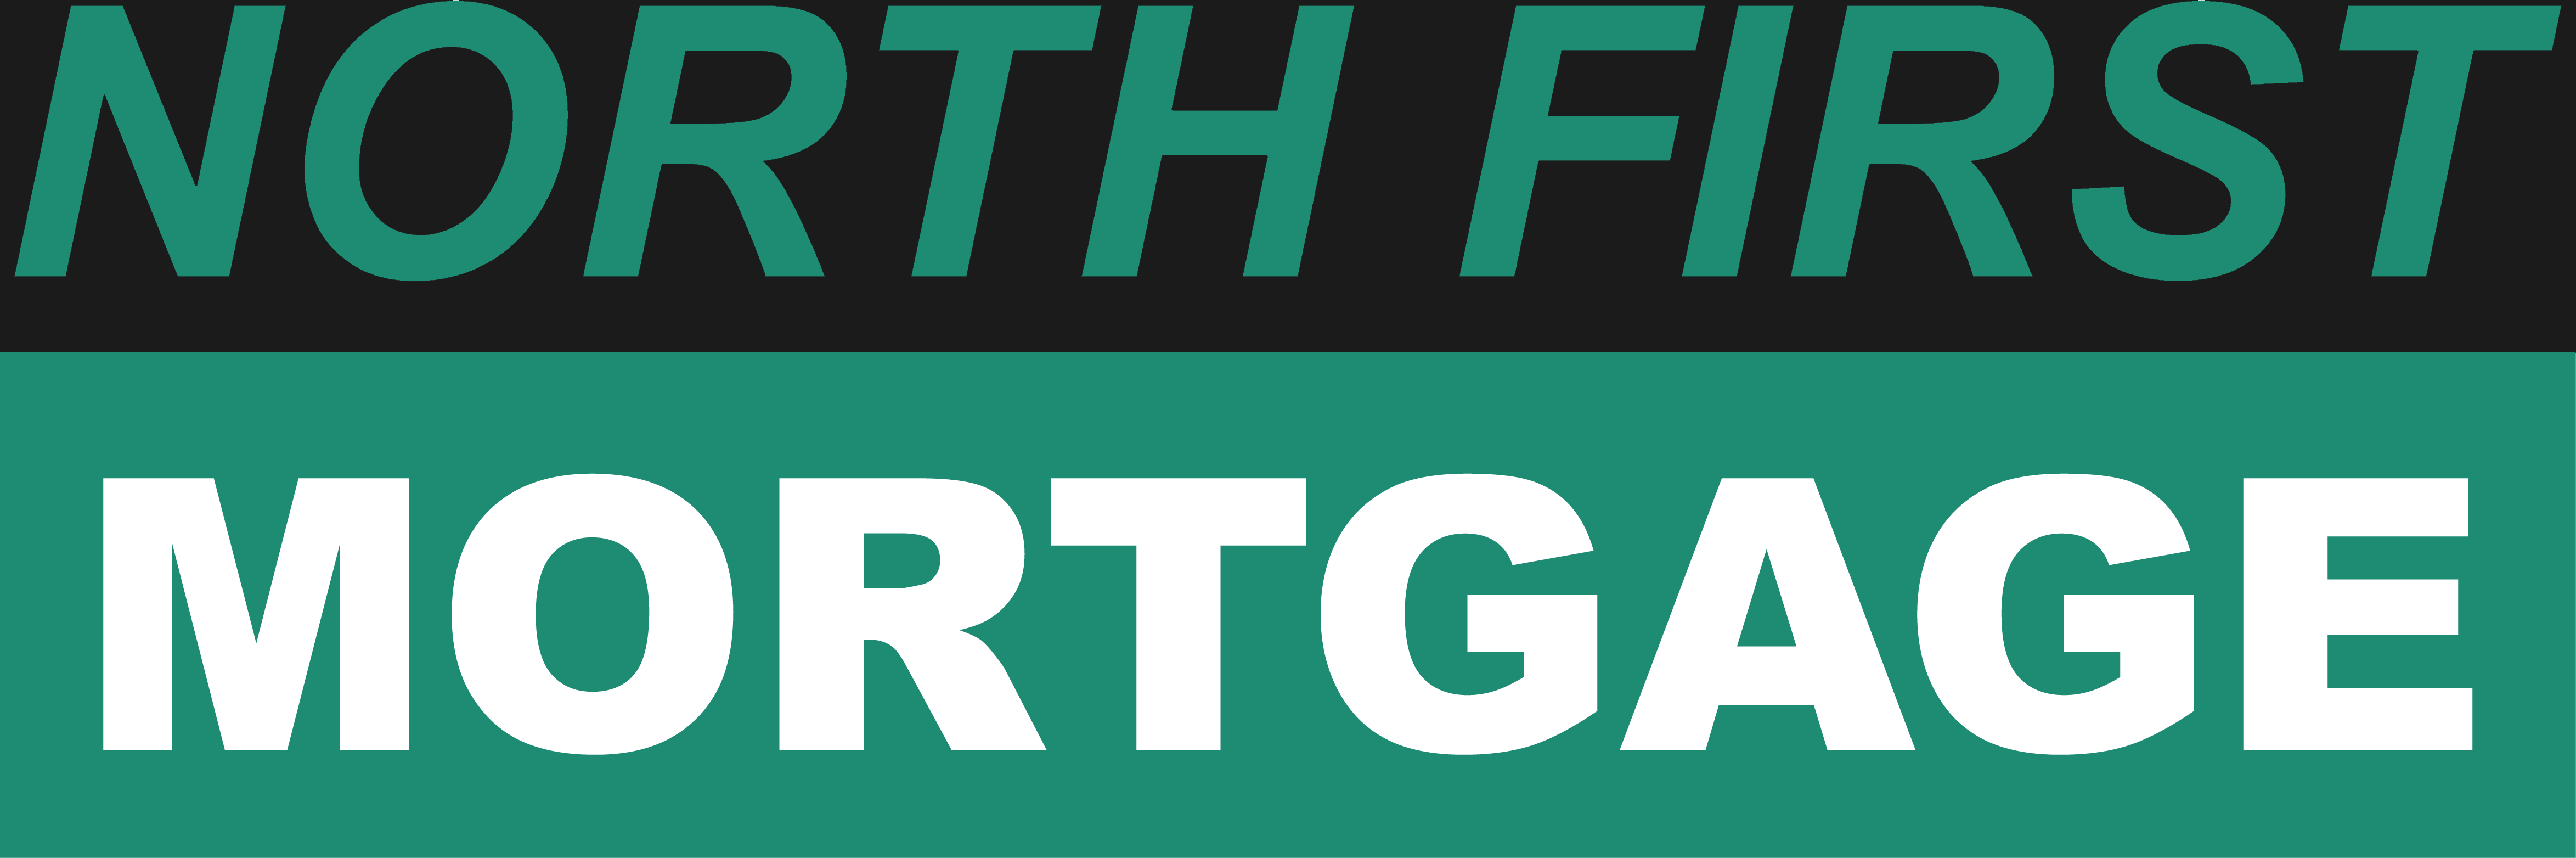 North First Mortgage